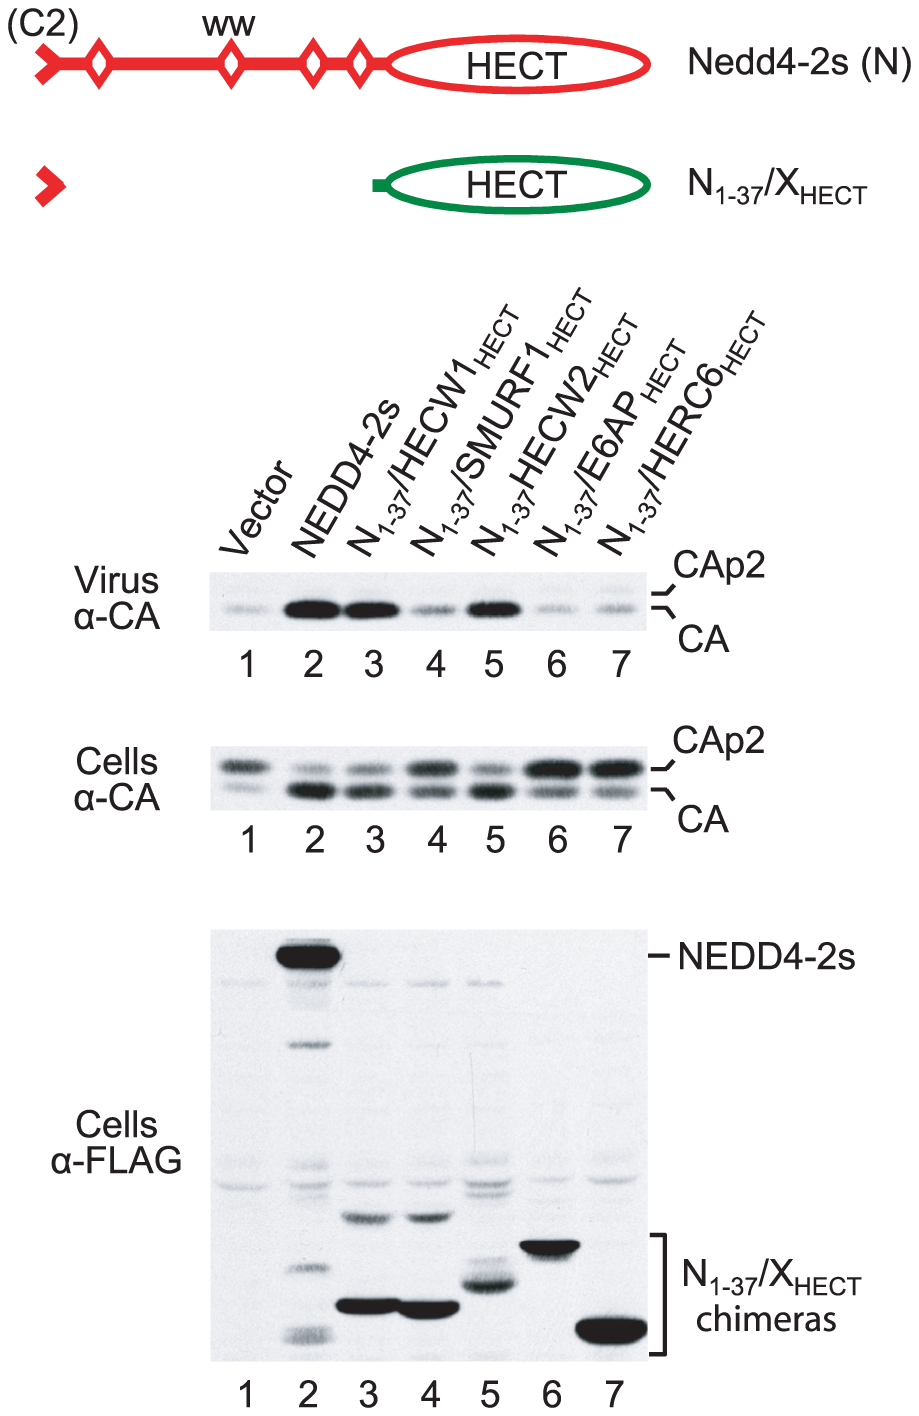 Rescue of HIV-1<sub>ΔPTAPP</sub> by isolated HECT domains fused to the NEDD4-2s residual C2 domain.